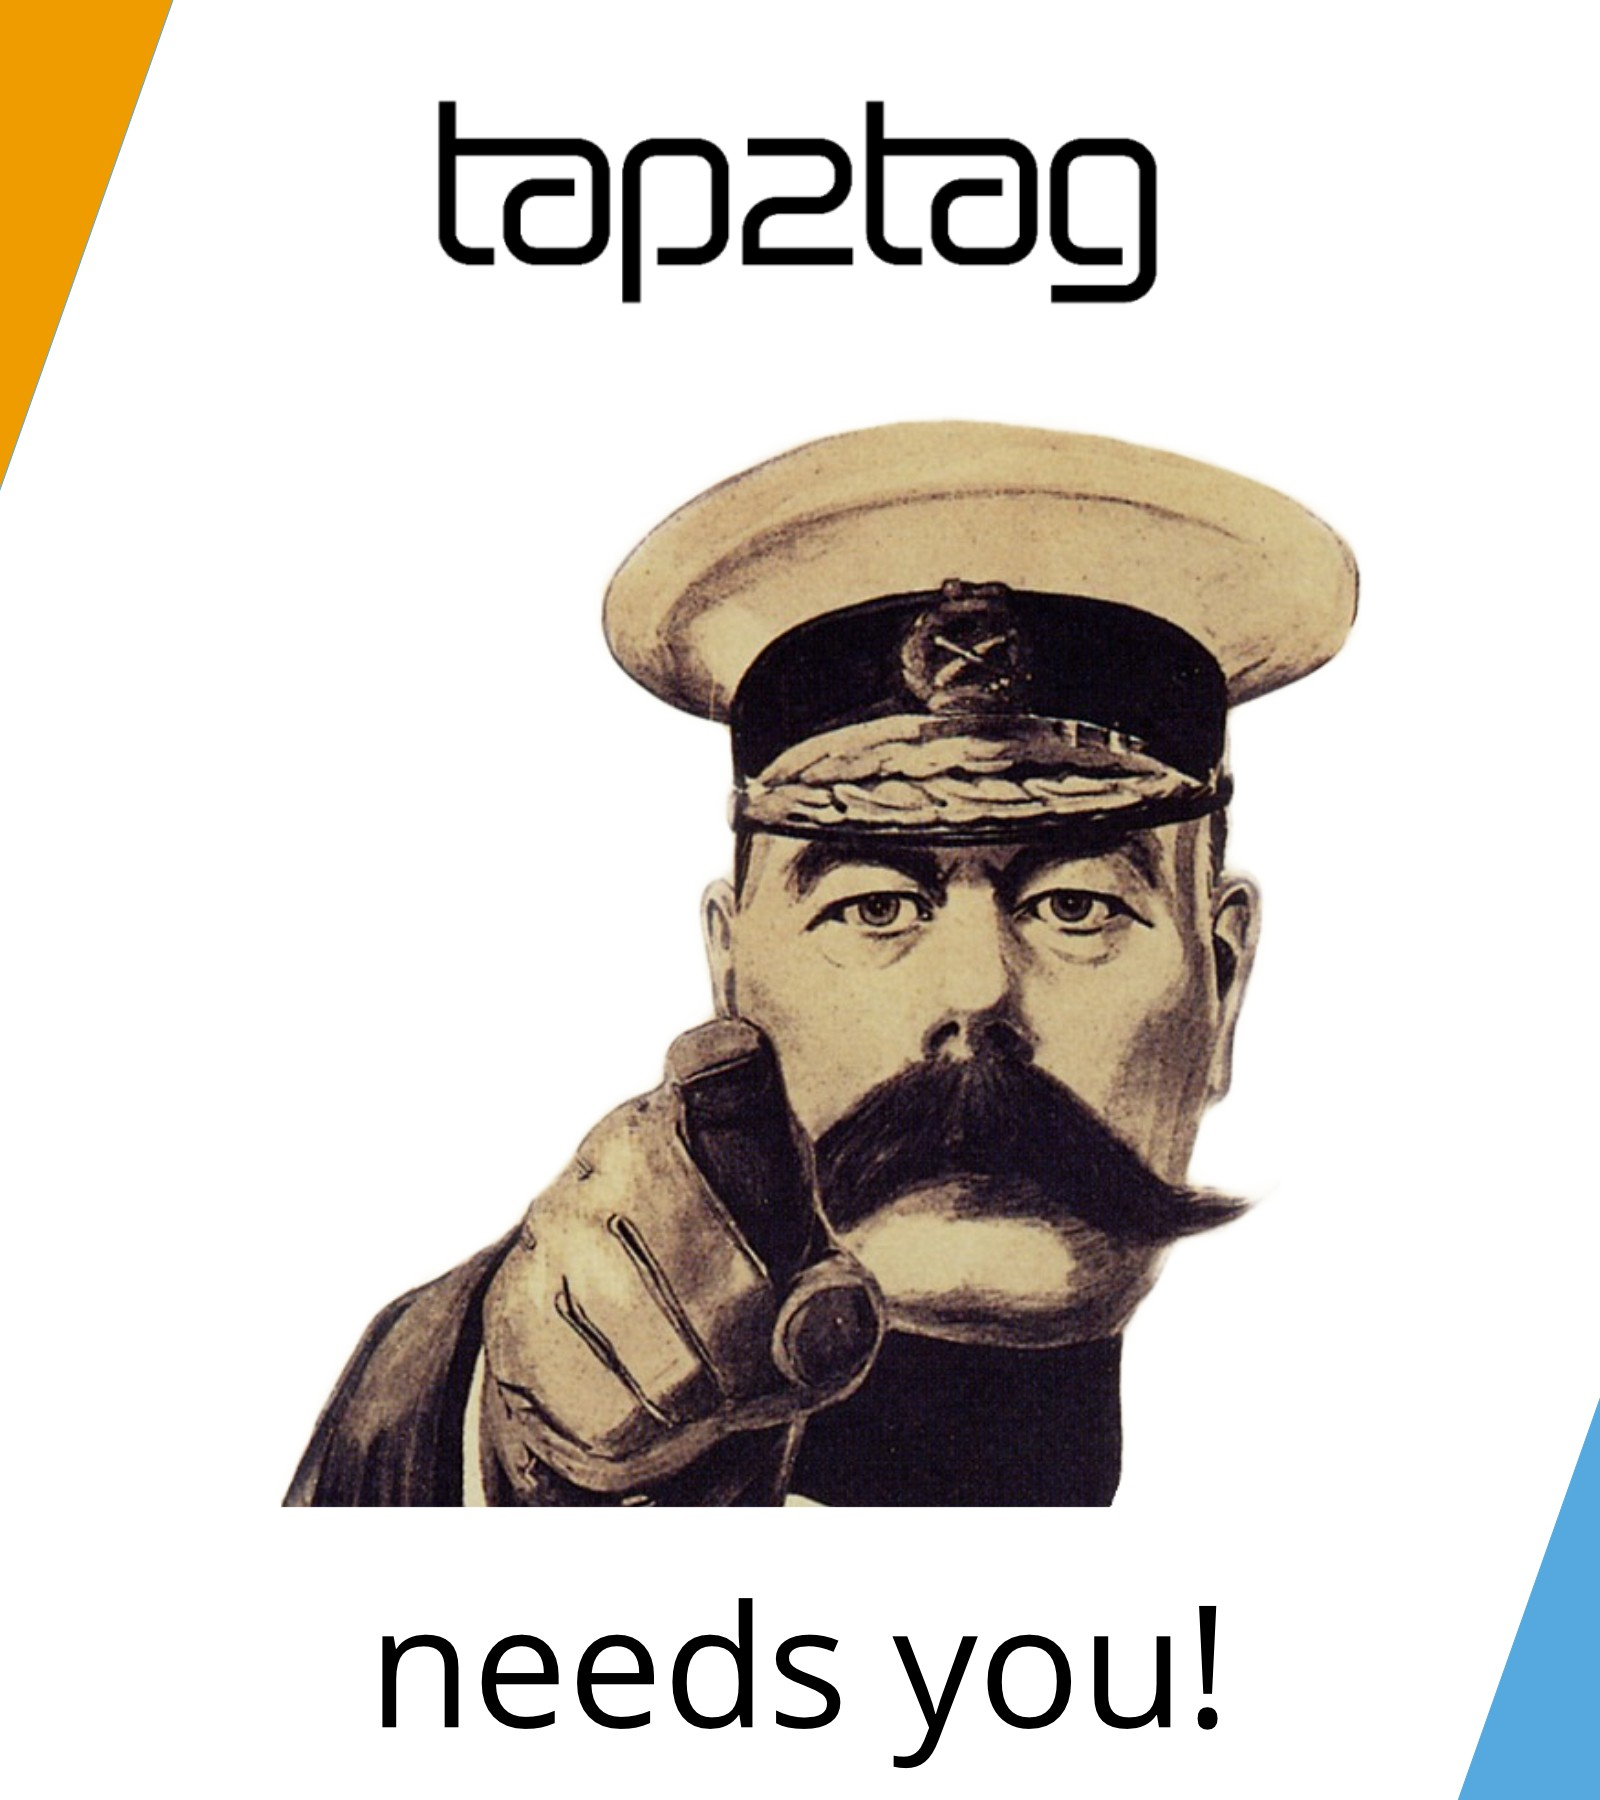 Tap2Tag Needs You